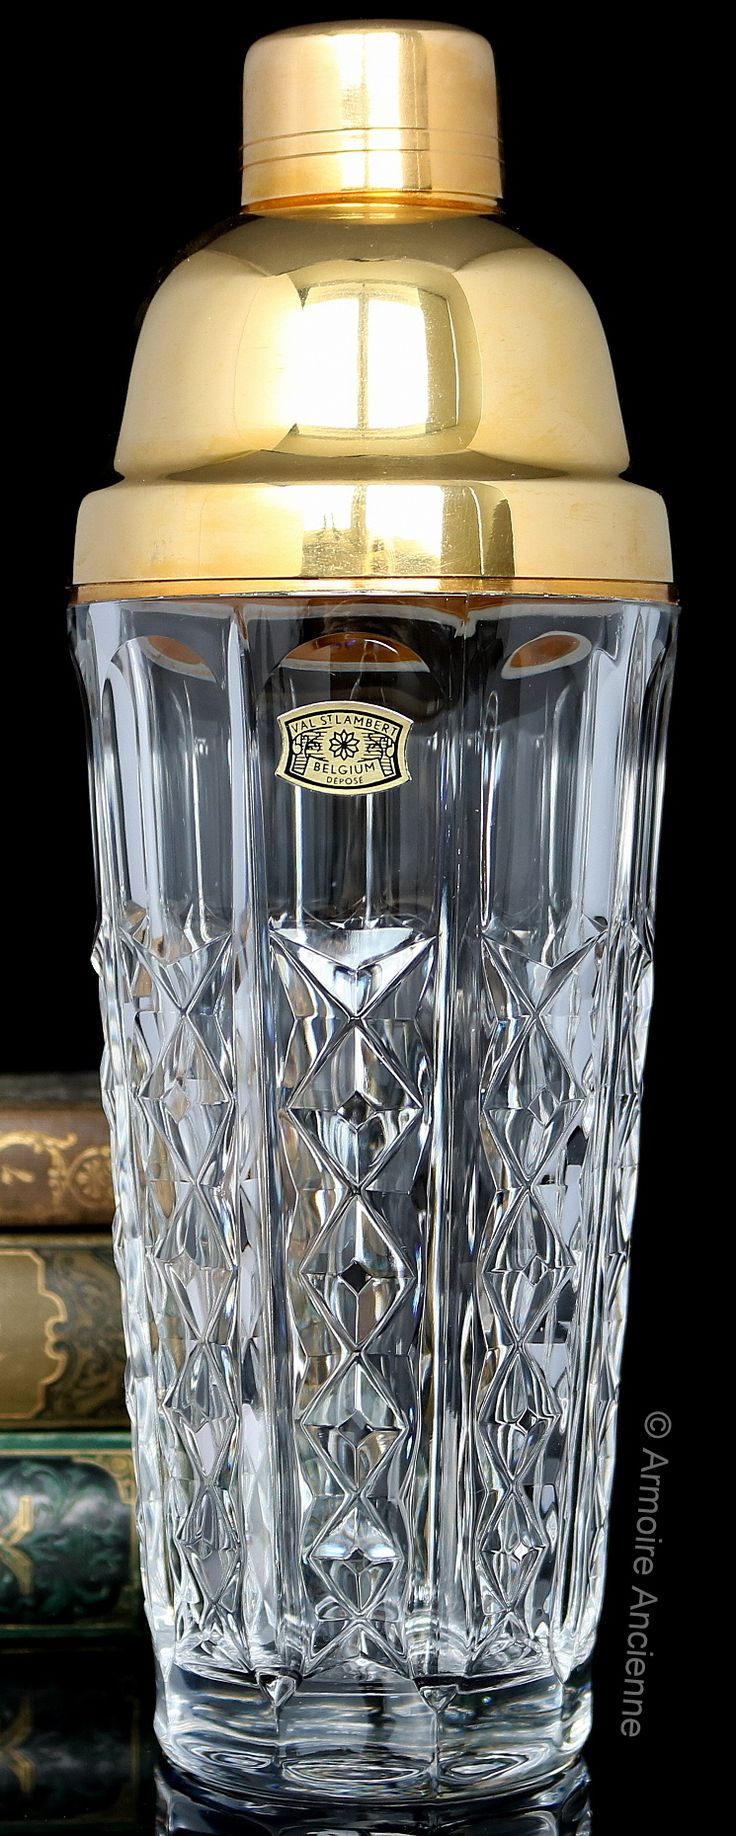 BUY ON ETSY: VAL ST. LAMBERT Cocktail Shaker and Ice Bucket Set, Lead Crystal & Gold